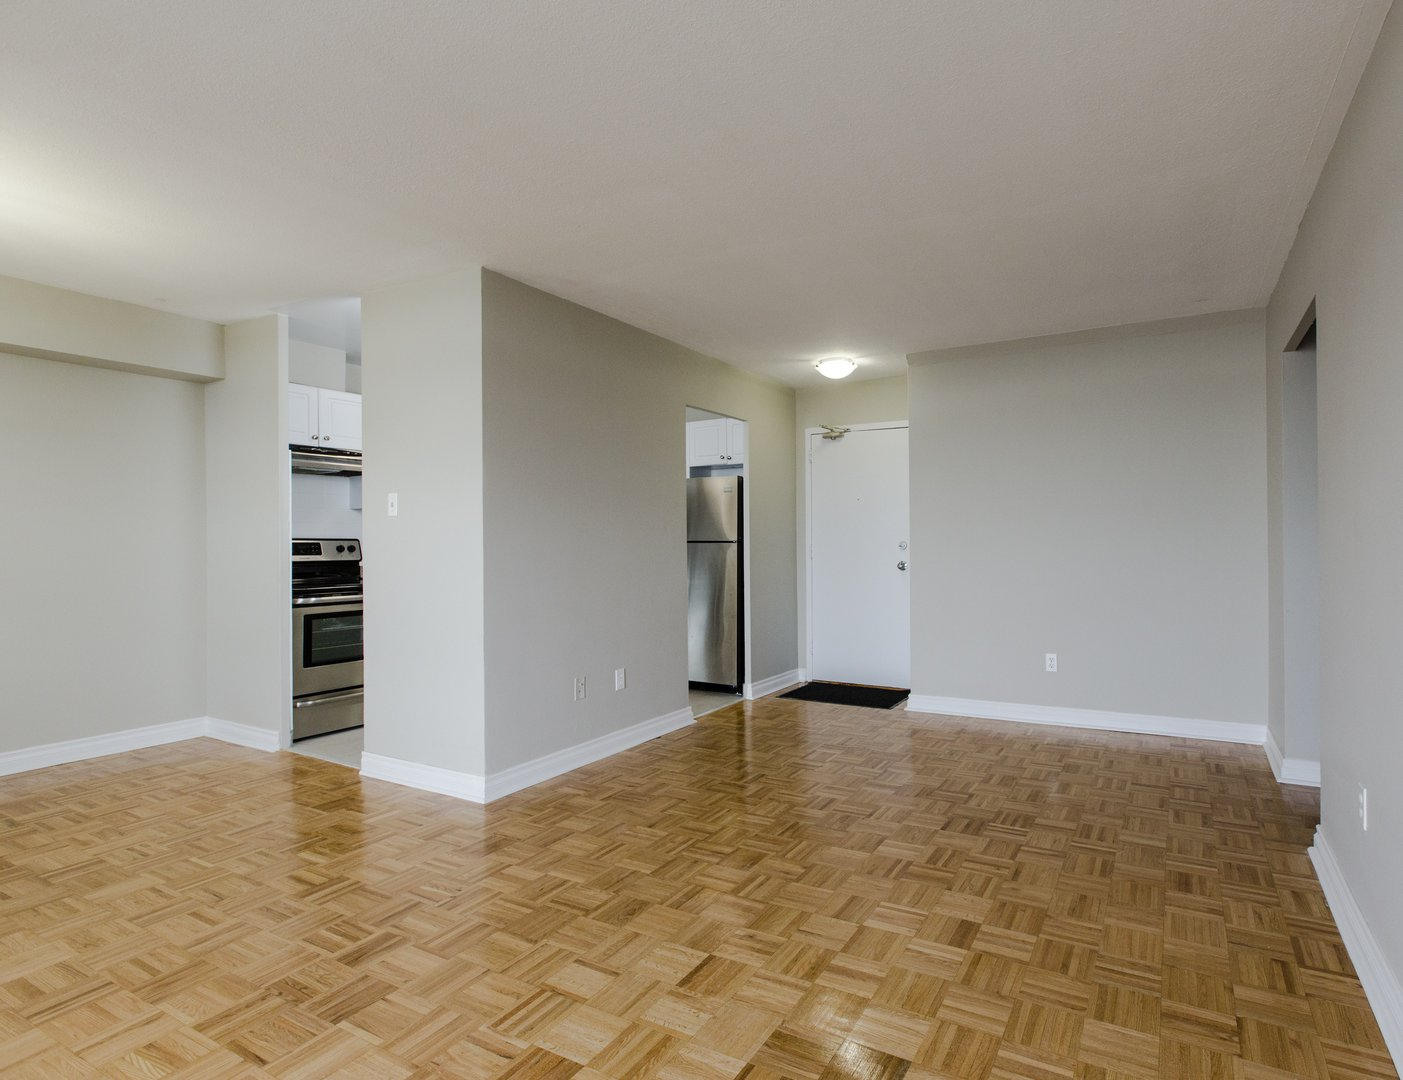 Apartment for rent at 33 Kennedy Rd S, Brampton, ON. This is the empty room with stainless steel and hardwood floor.